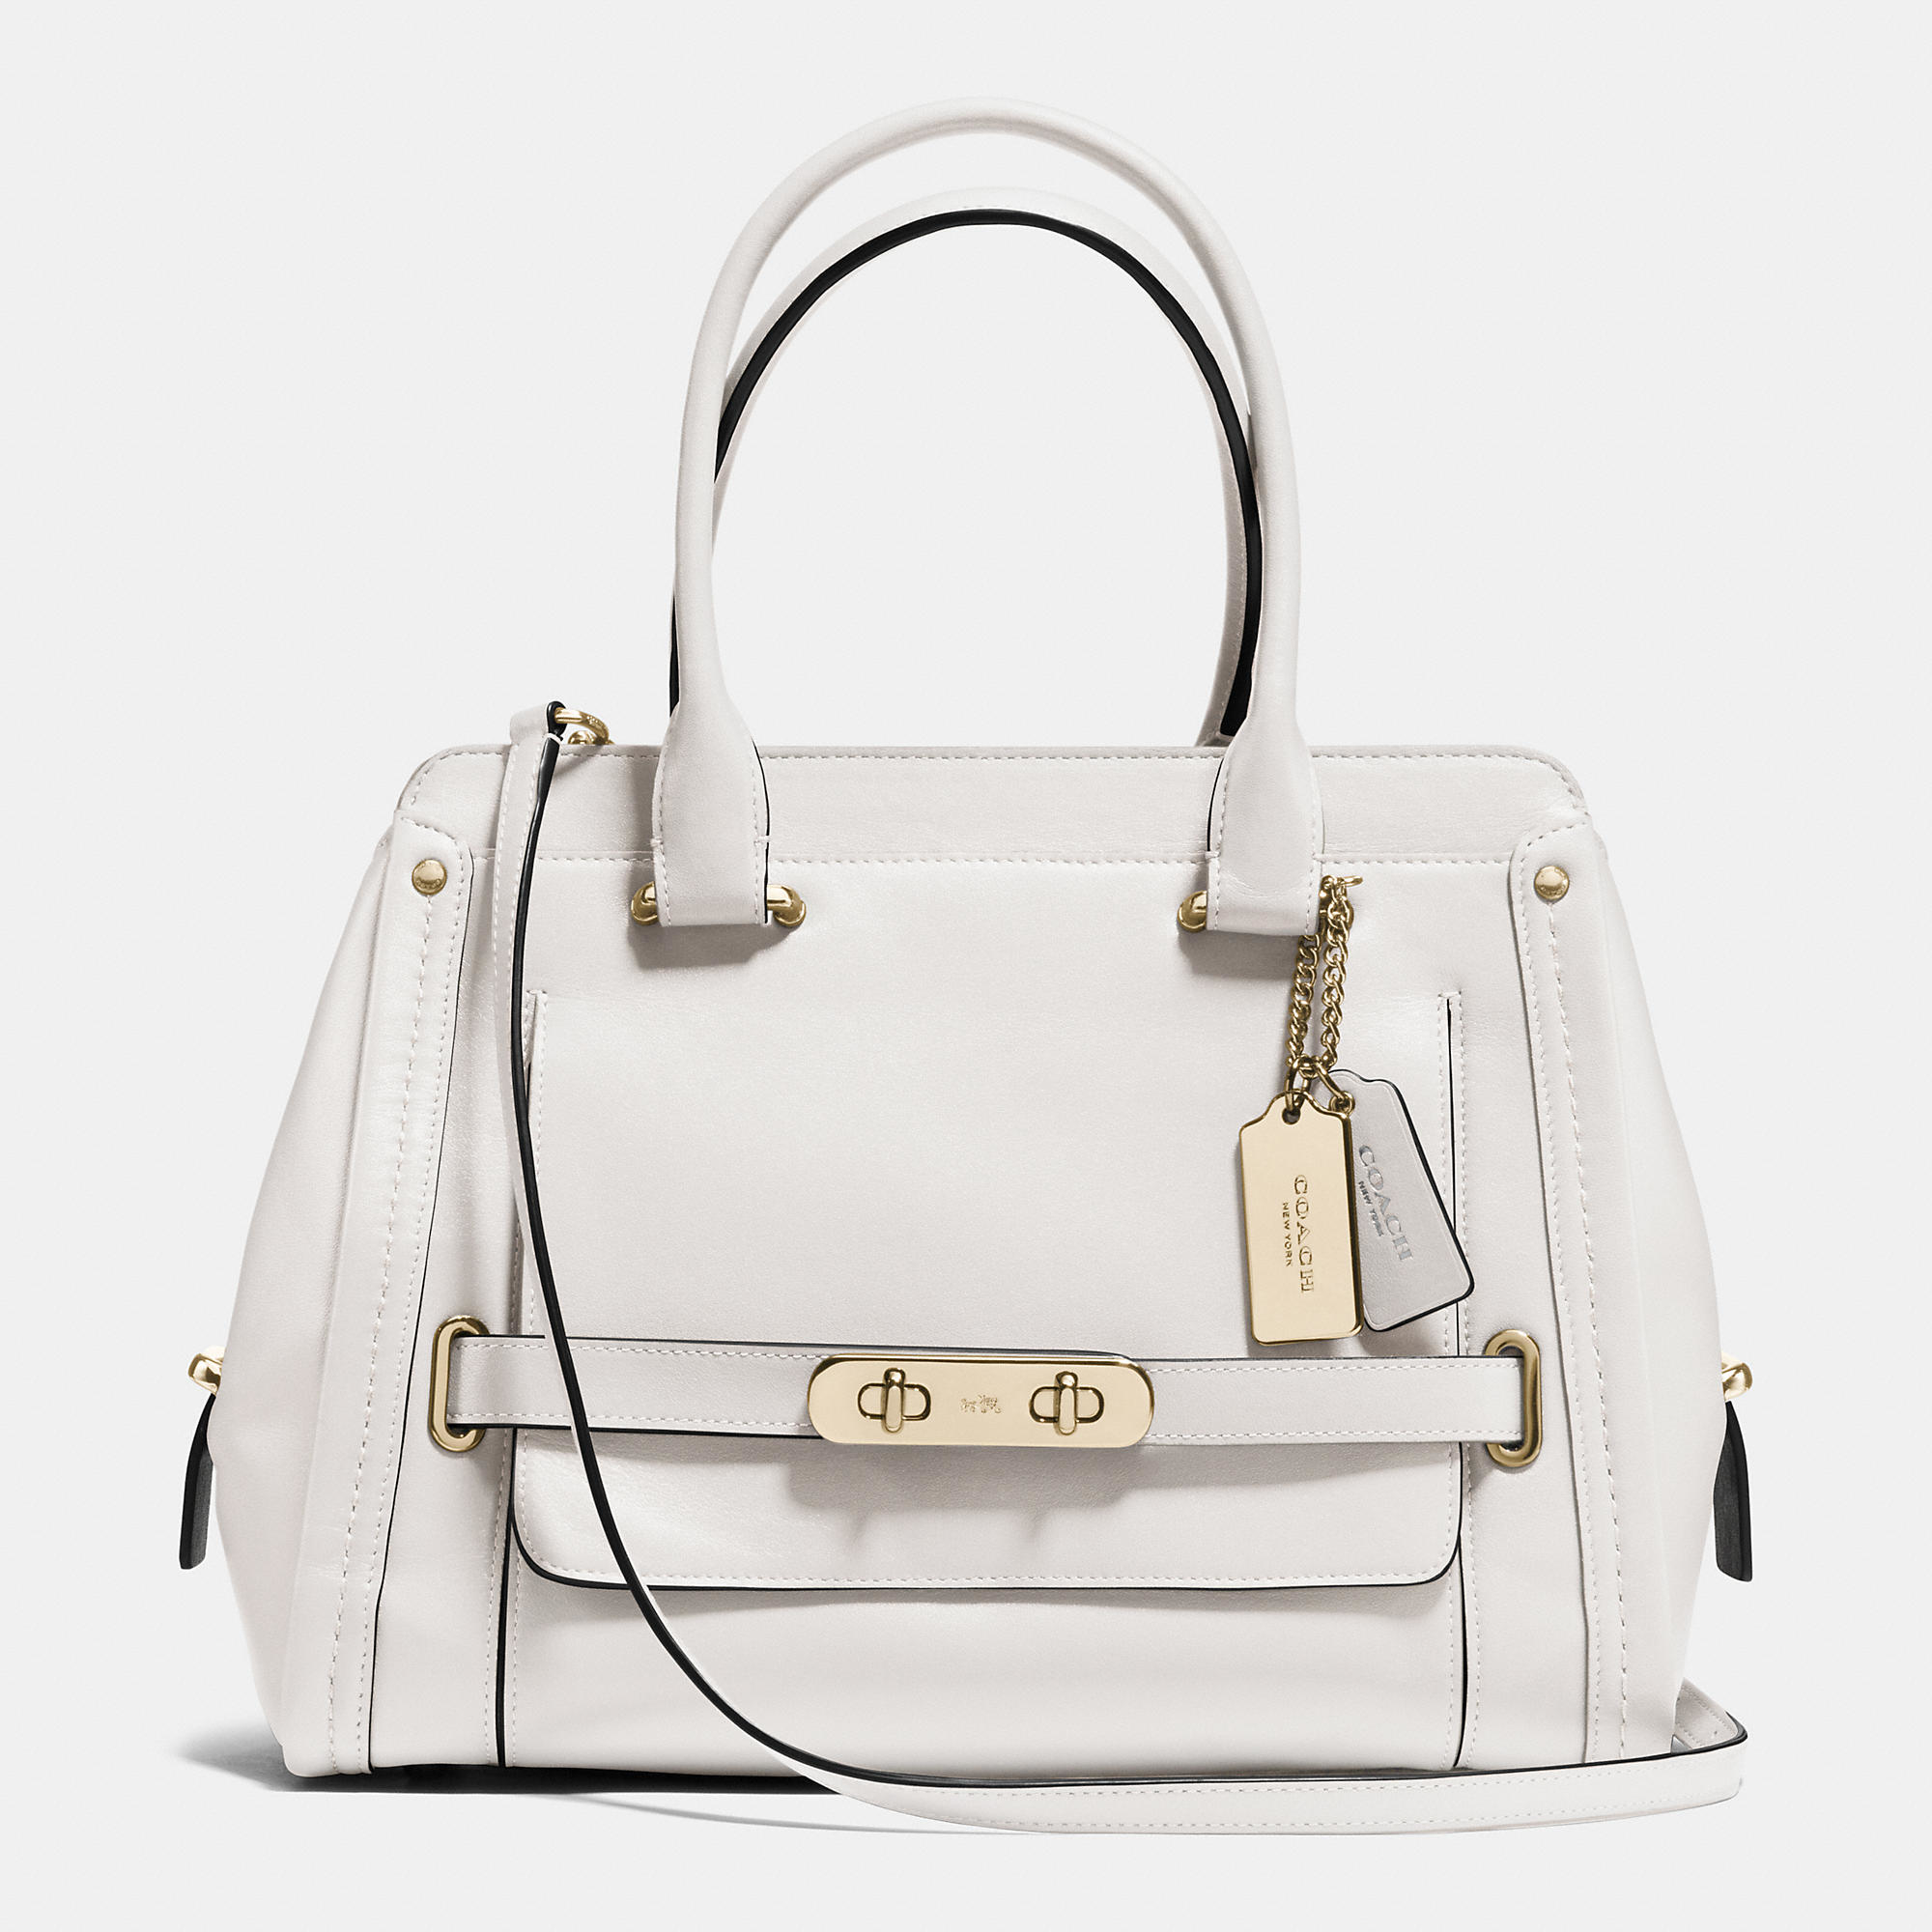 Lyst - Coach Swagger Frame Satchel In Calf Leather in Natural